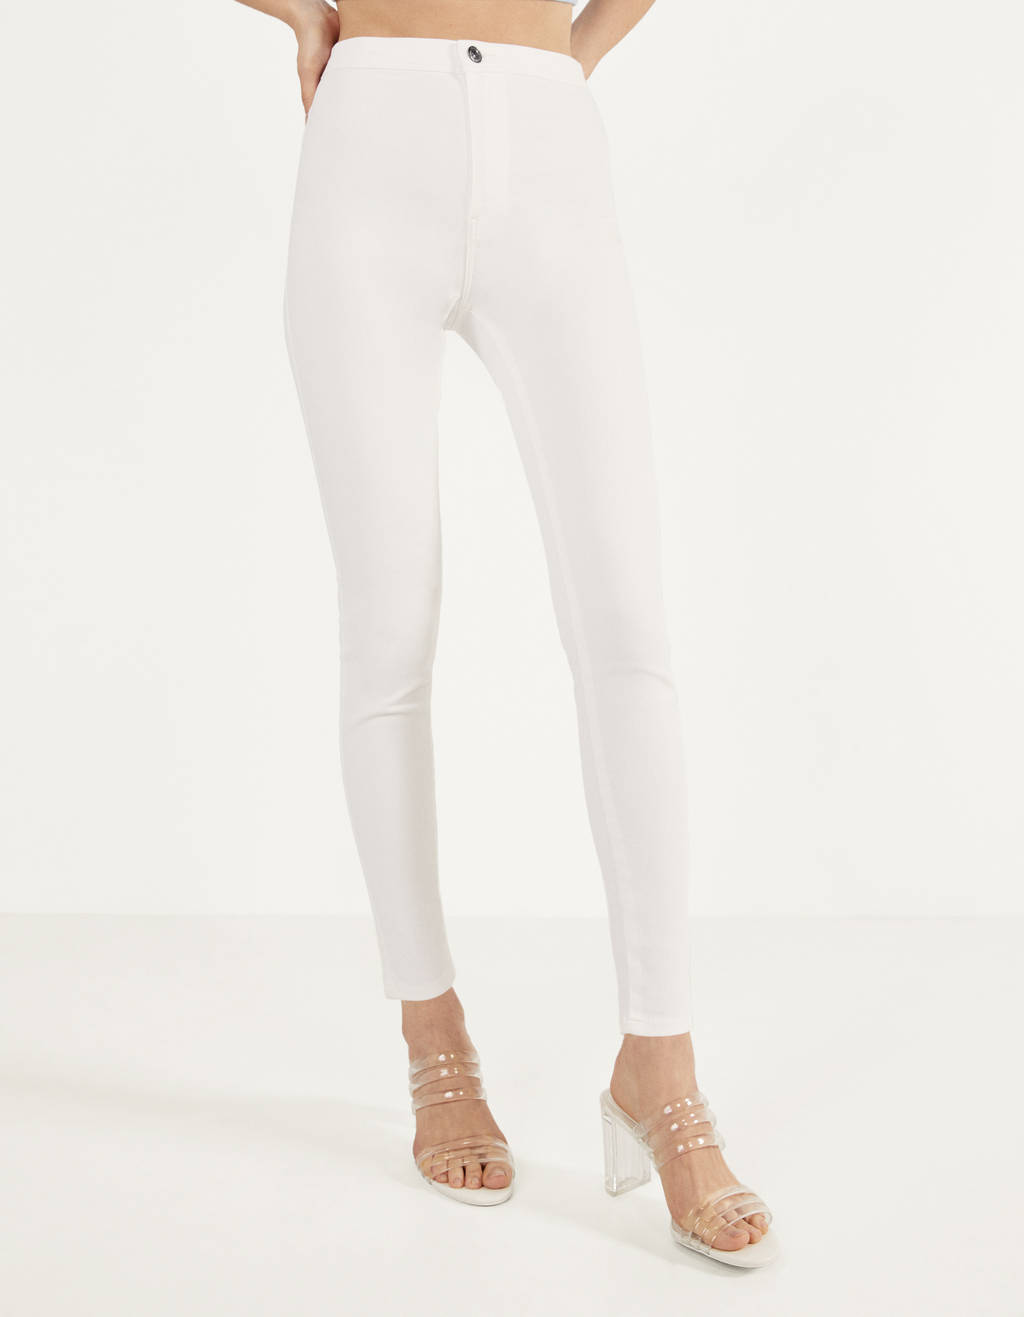 Pantalons jeggings high waist